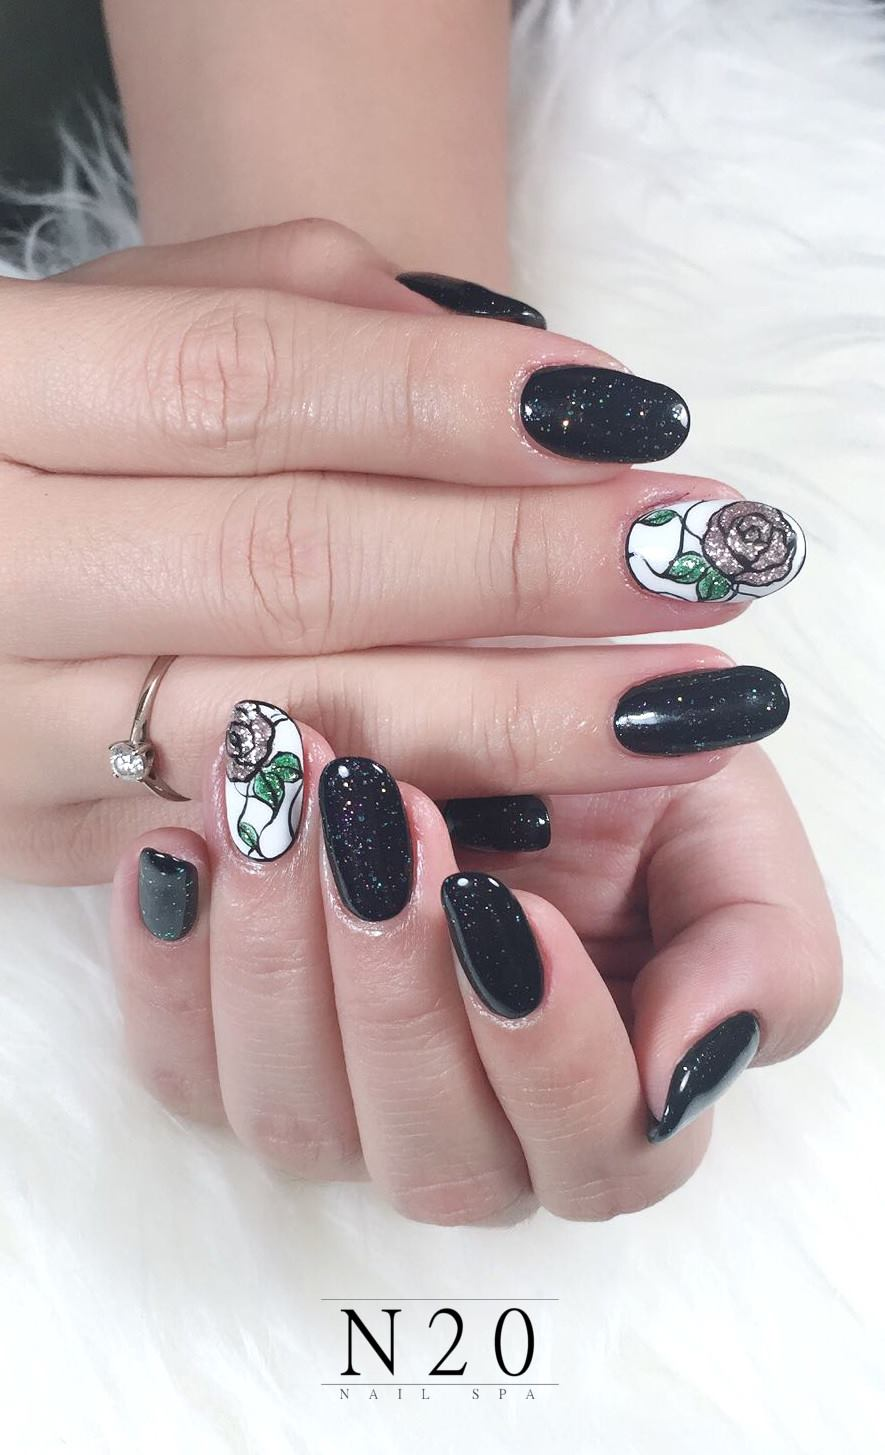 Glitter on bold black and flora on white manicure nail art - N20 Nail Spa